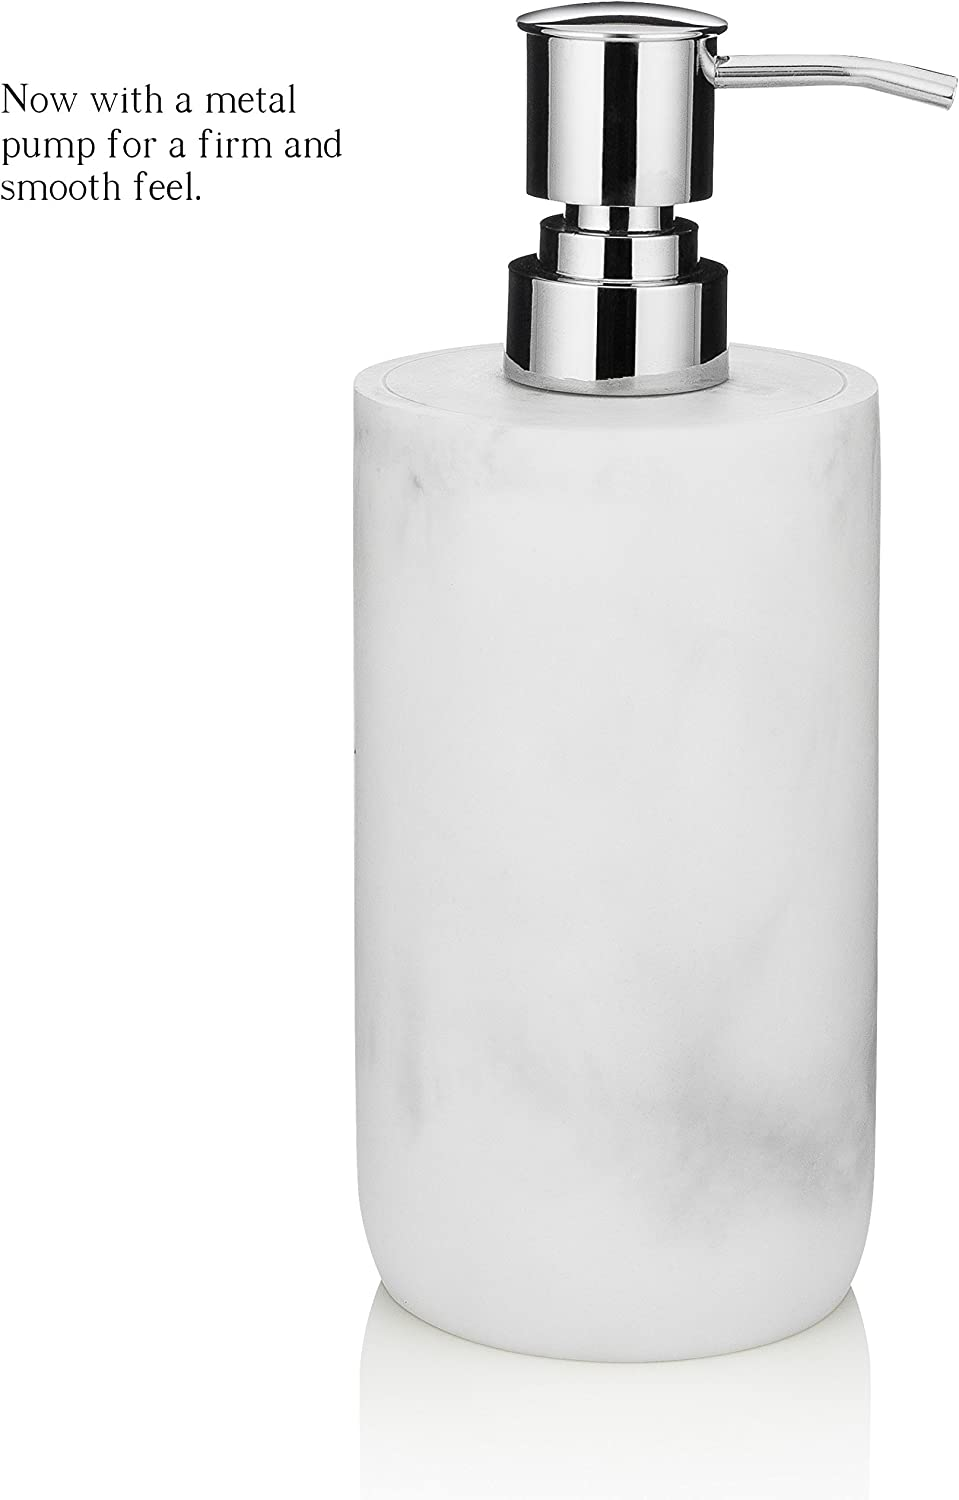 Essentra Home Blanc Collection White Liquid Soap Dispenser with Metal Pump for Bathroom, Bedroom or Kitchen. Also Great for Hand Lotion and Essential Oils.: Home & Kitchen